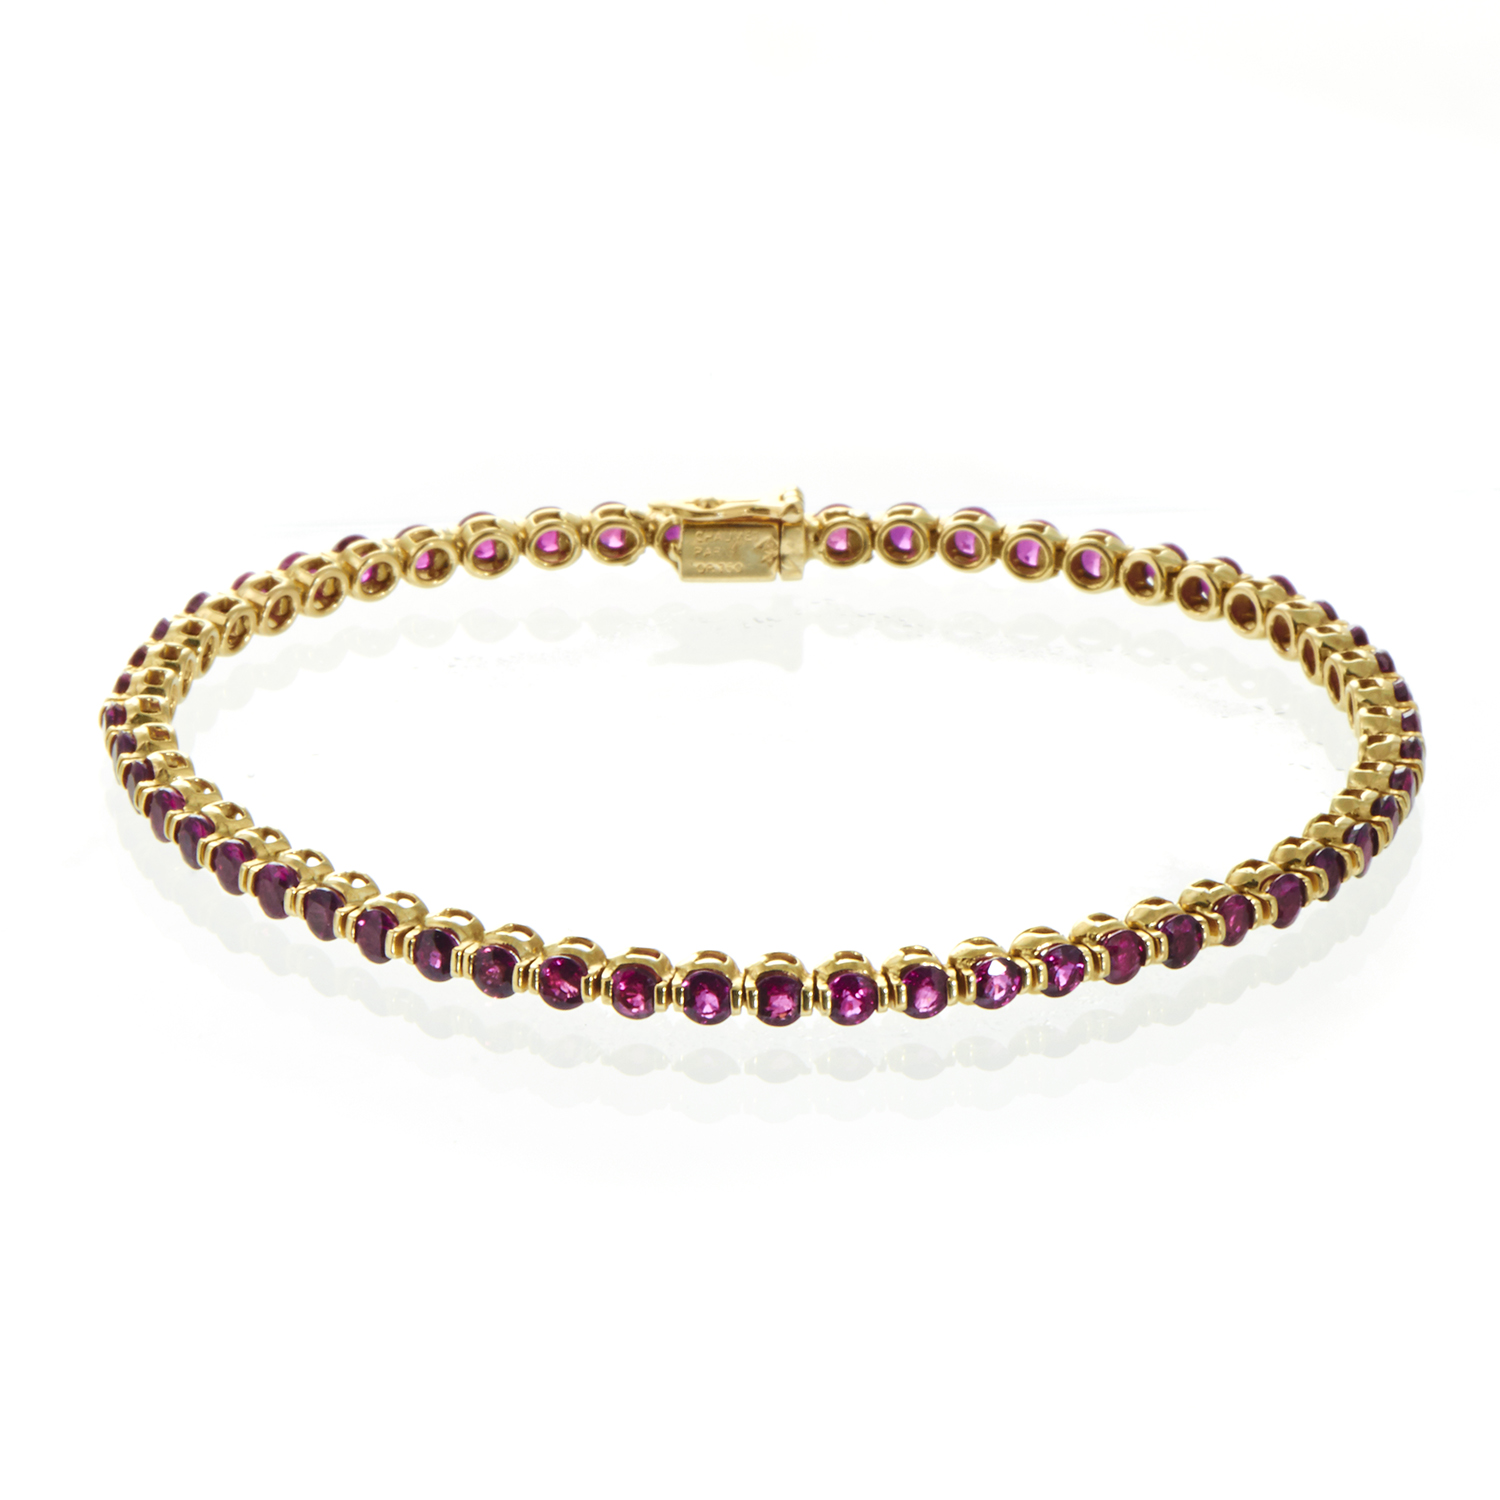 Chaumet Women's 18K Yellow Gold Ruby Tennis Bracelet